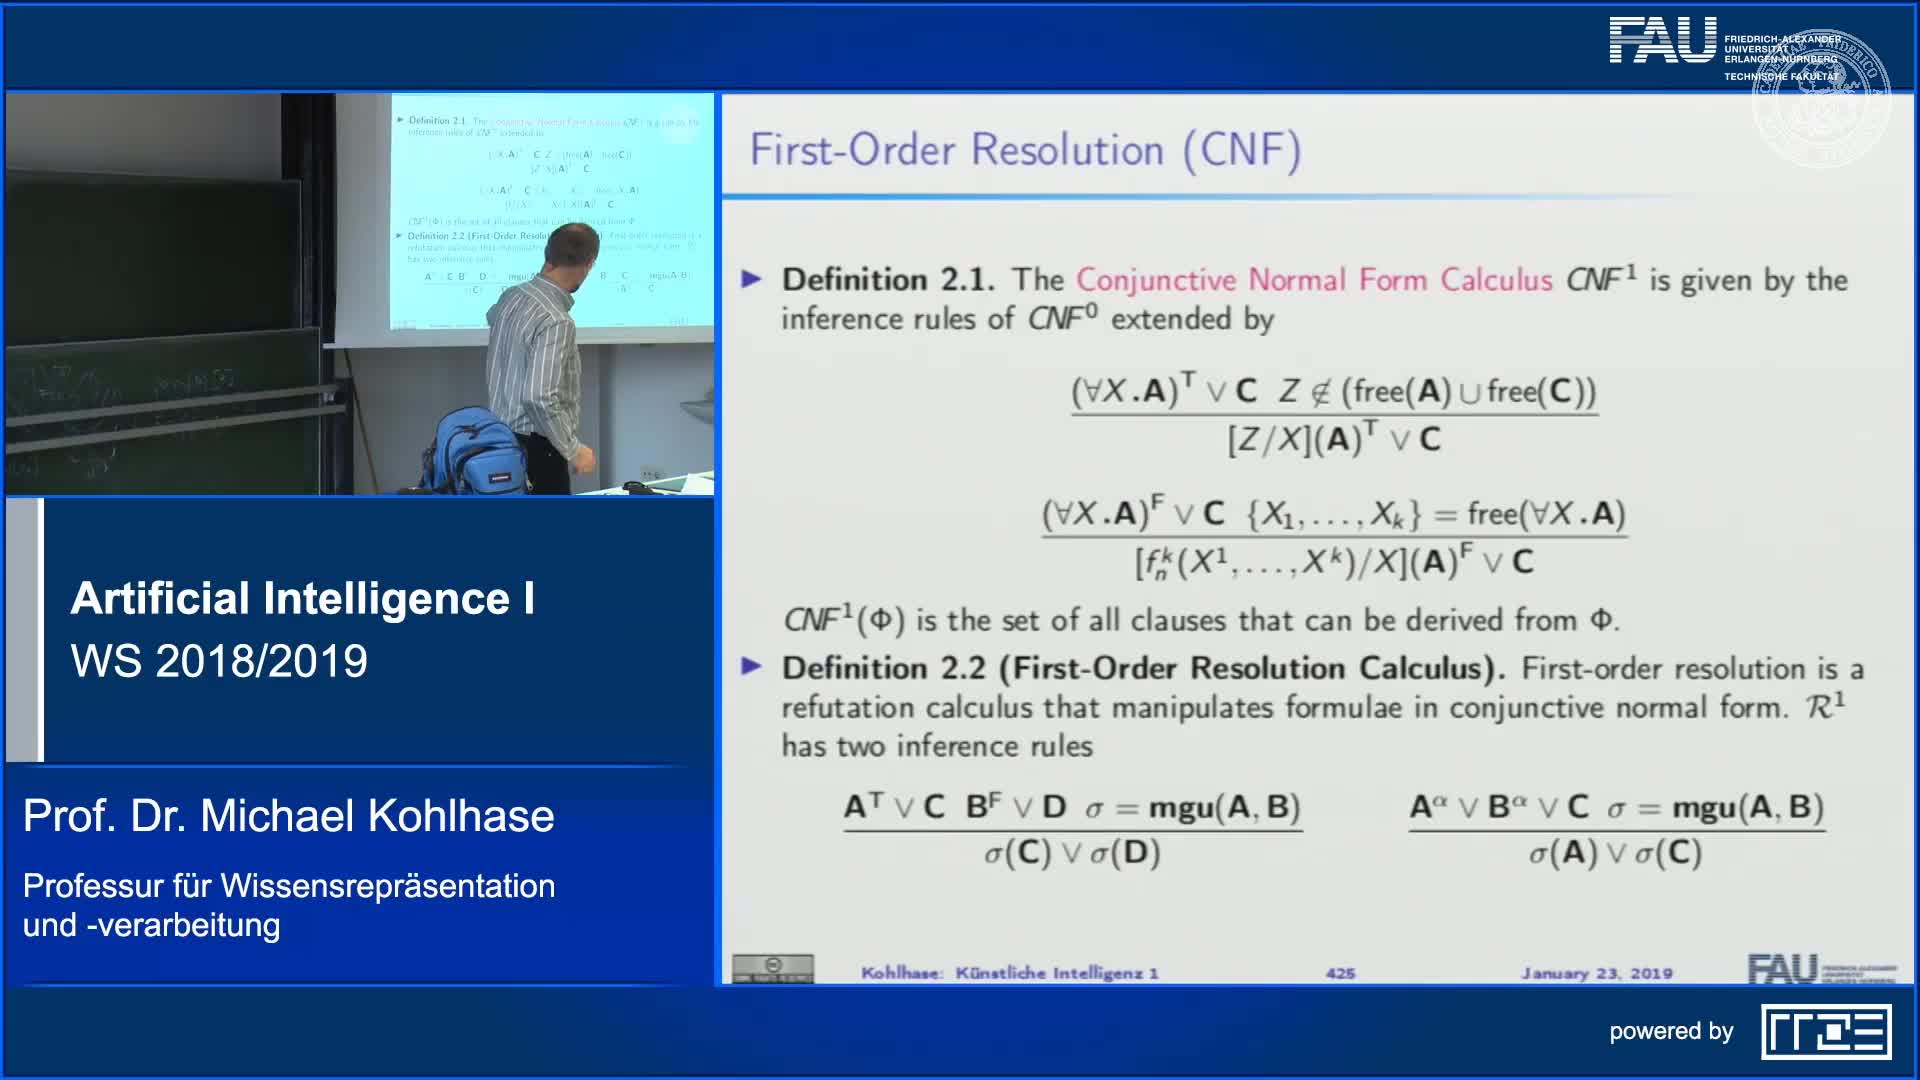 First-Order Resolution (Examples) preview image